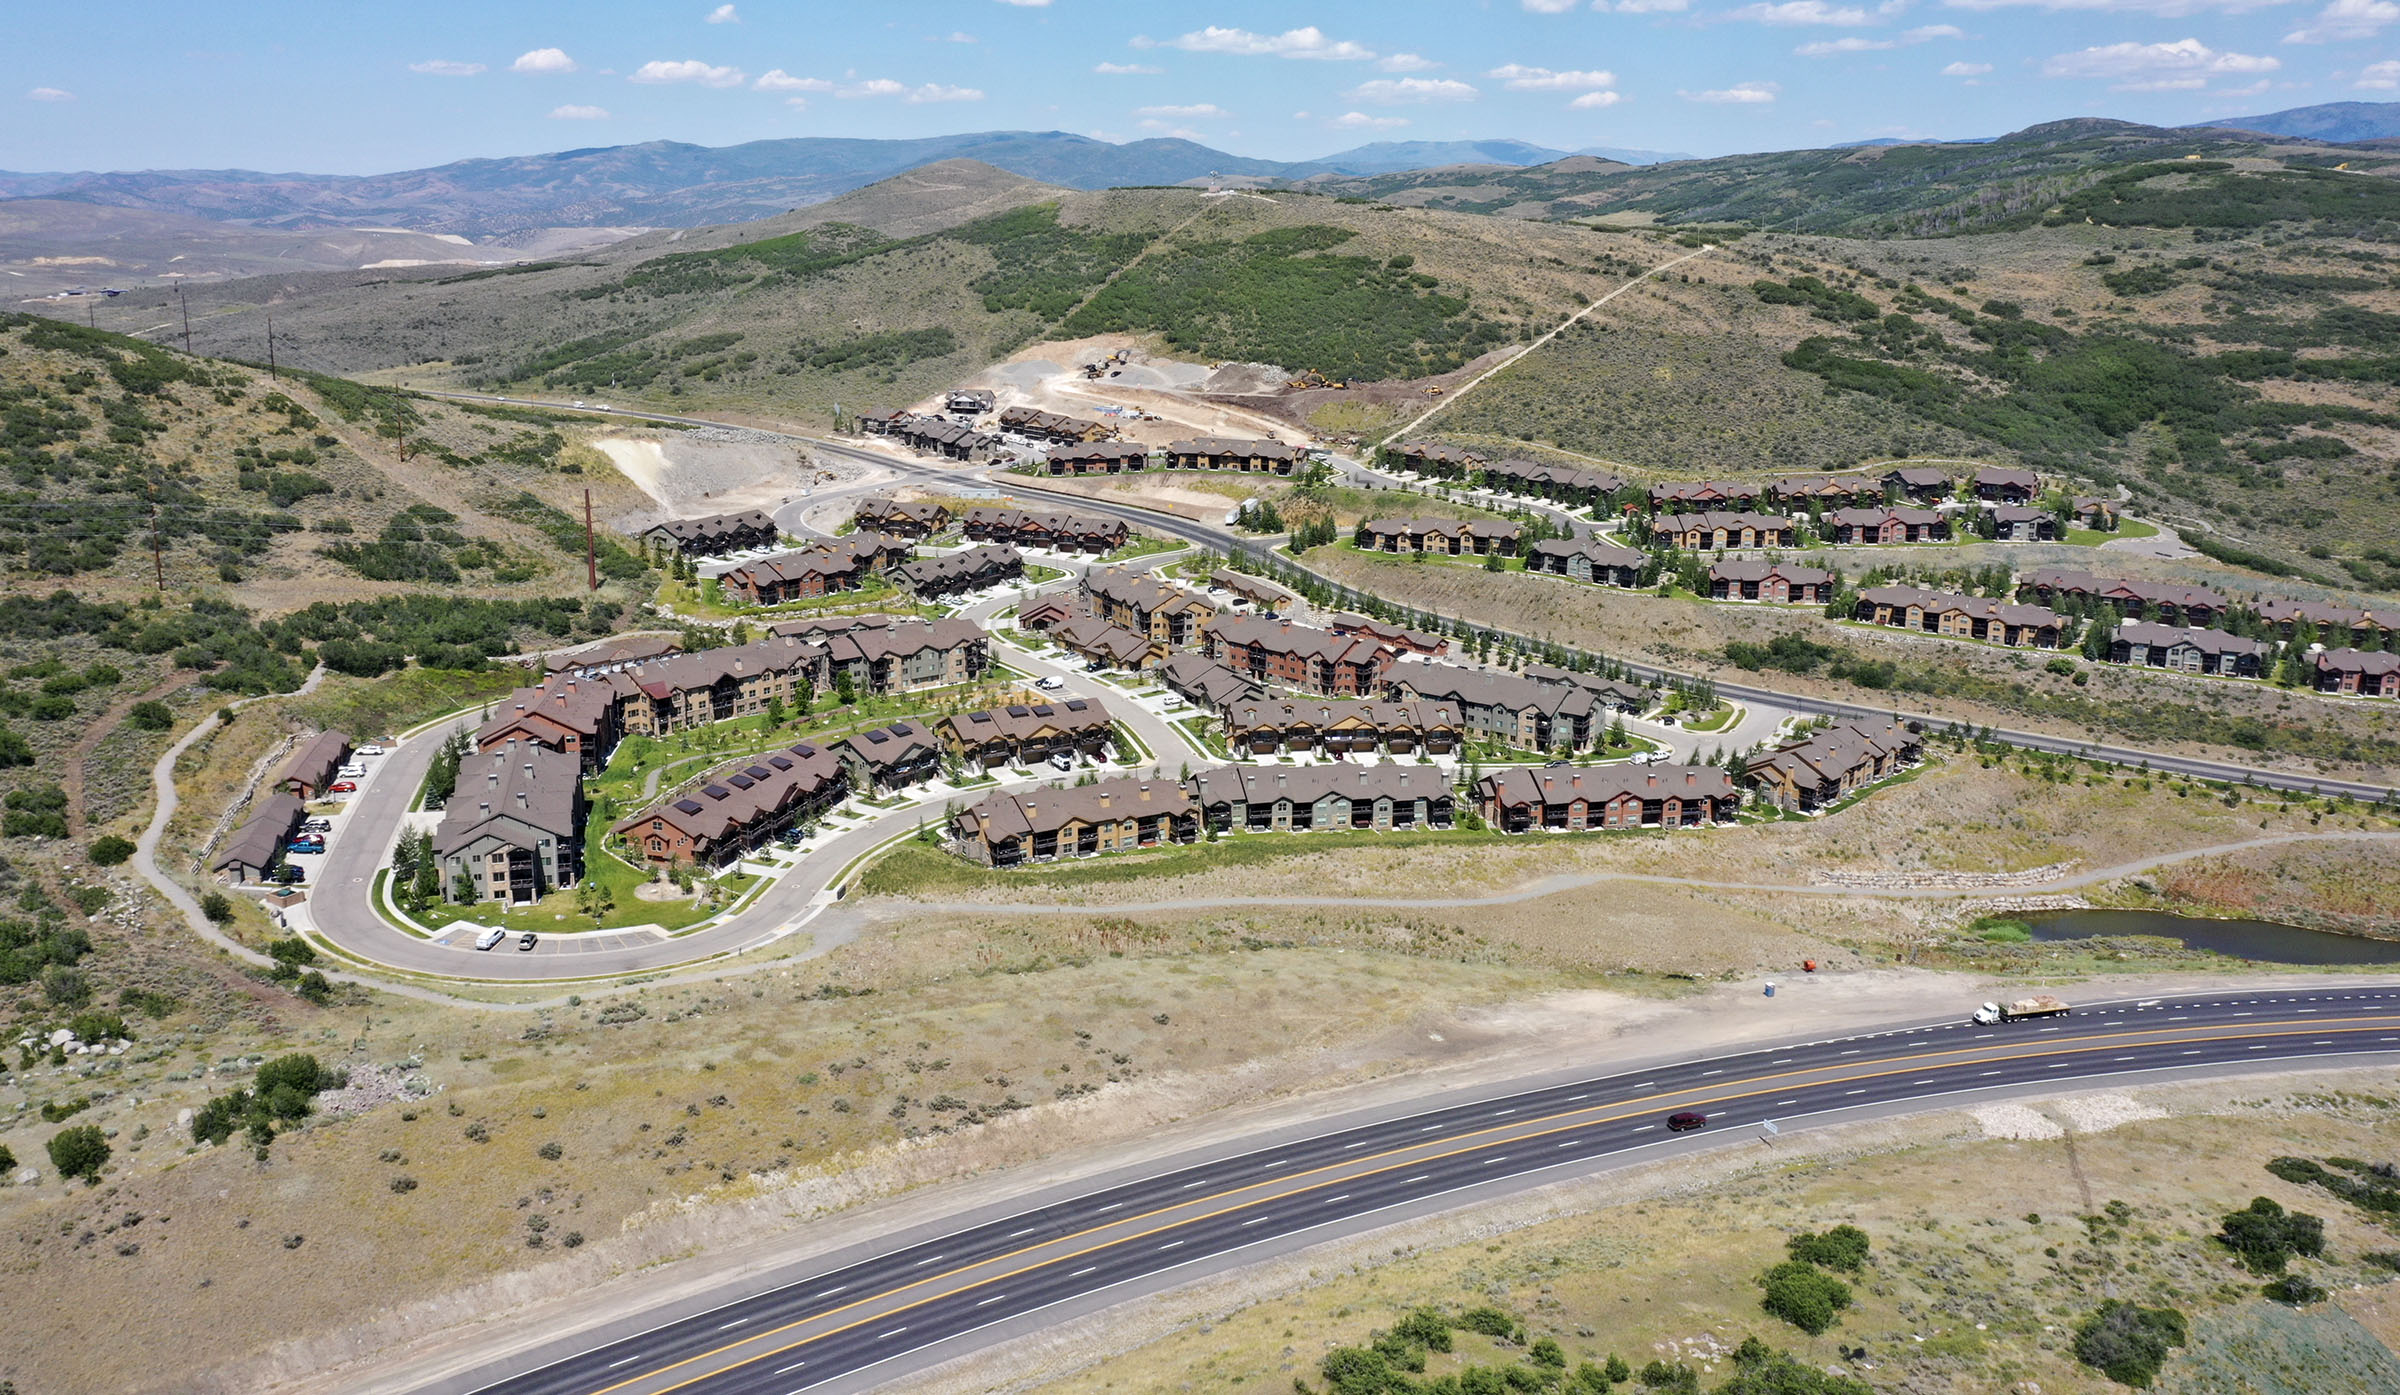 The town of Hideout wants to annex hundreds of acres from Summit County and Wasatch County, including land on both sides of state Route 248, near the Black Rock Ridge community, in Wasatch County on Monday, July 20, 2020.